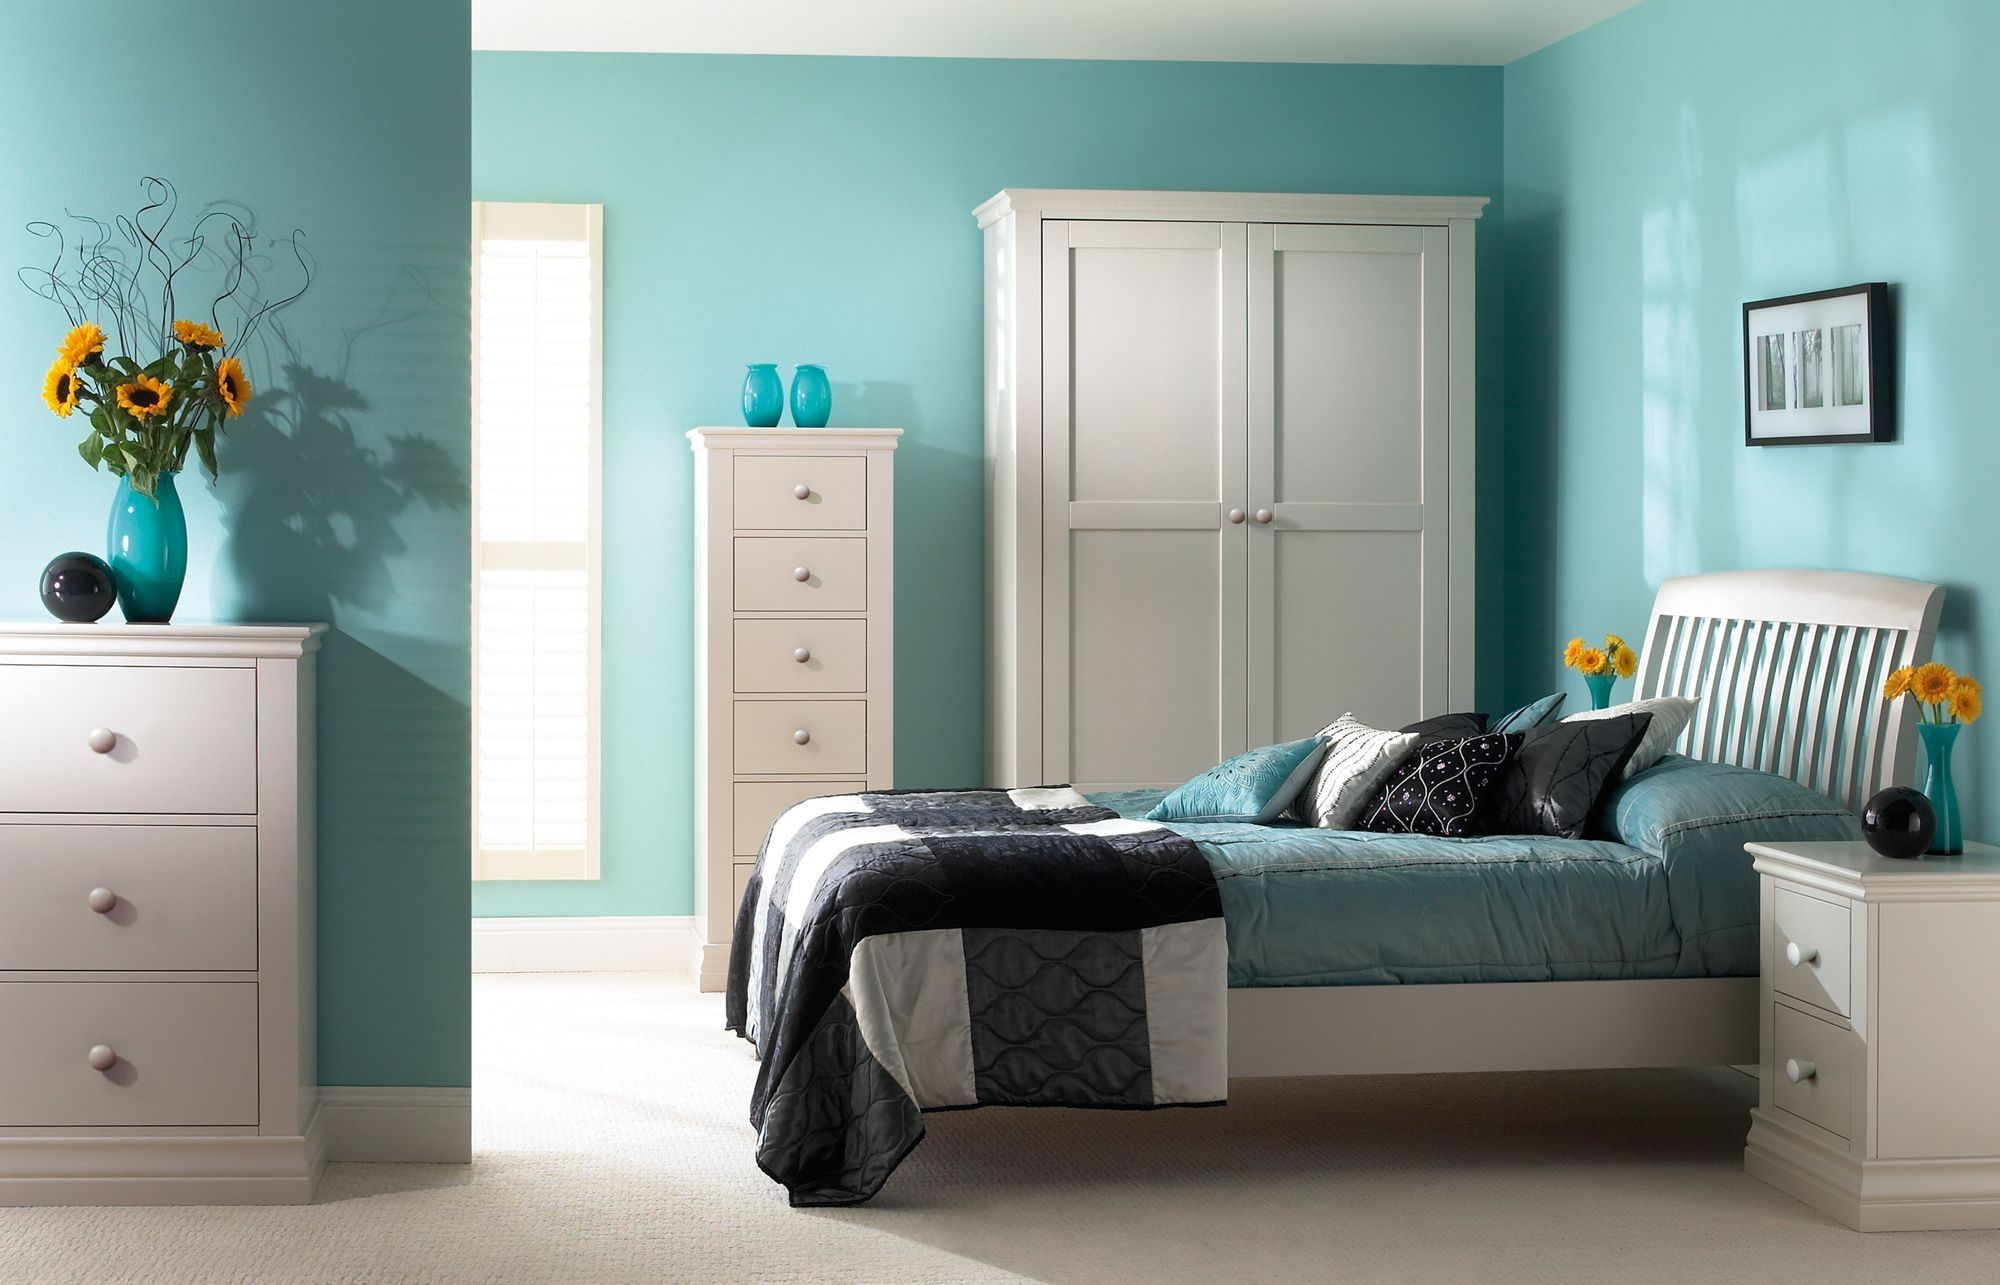 Add Yellow Sunflowers In Blue Bedroom Color Schemes For Wide Room With  White Dressers And Bed